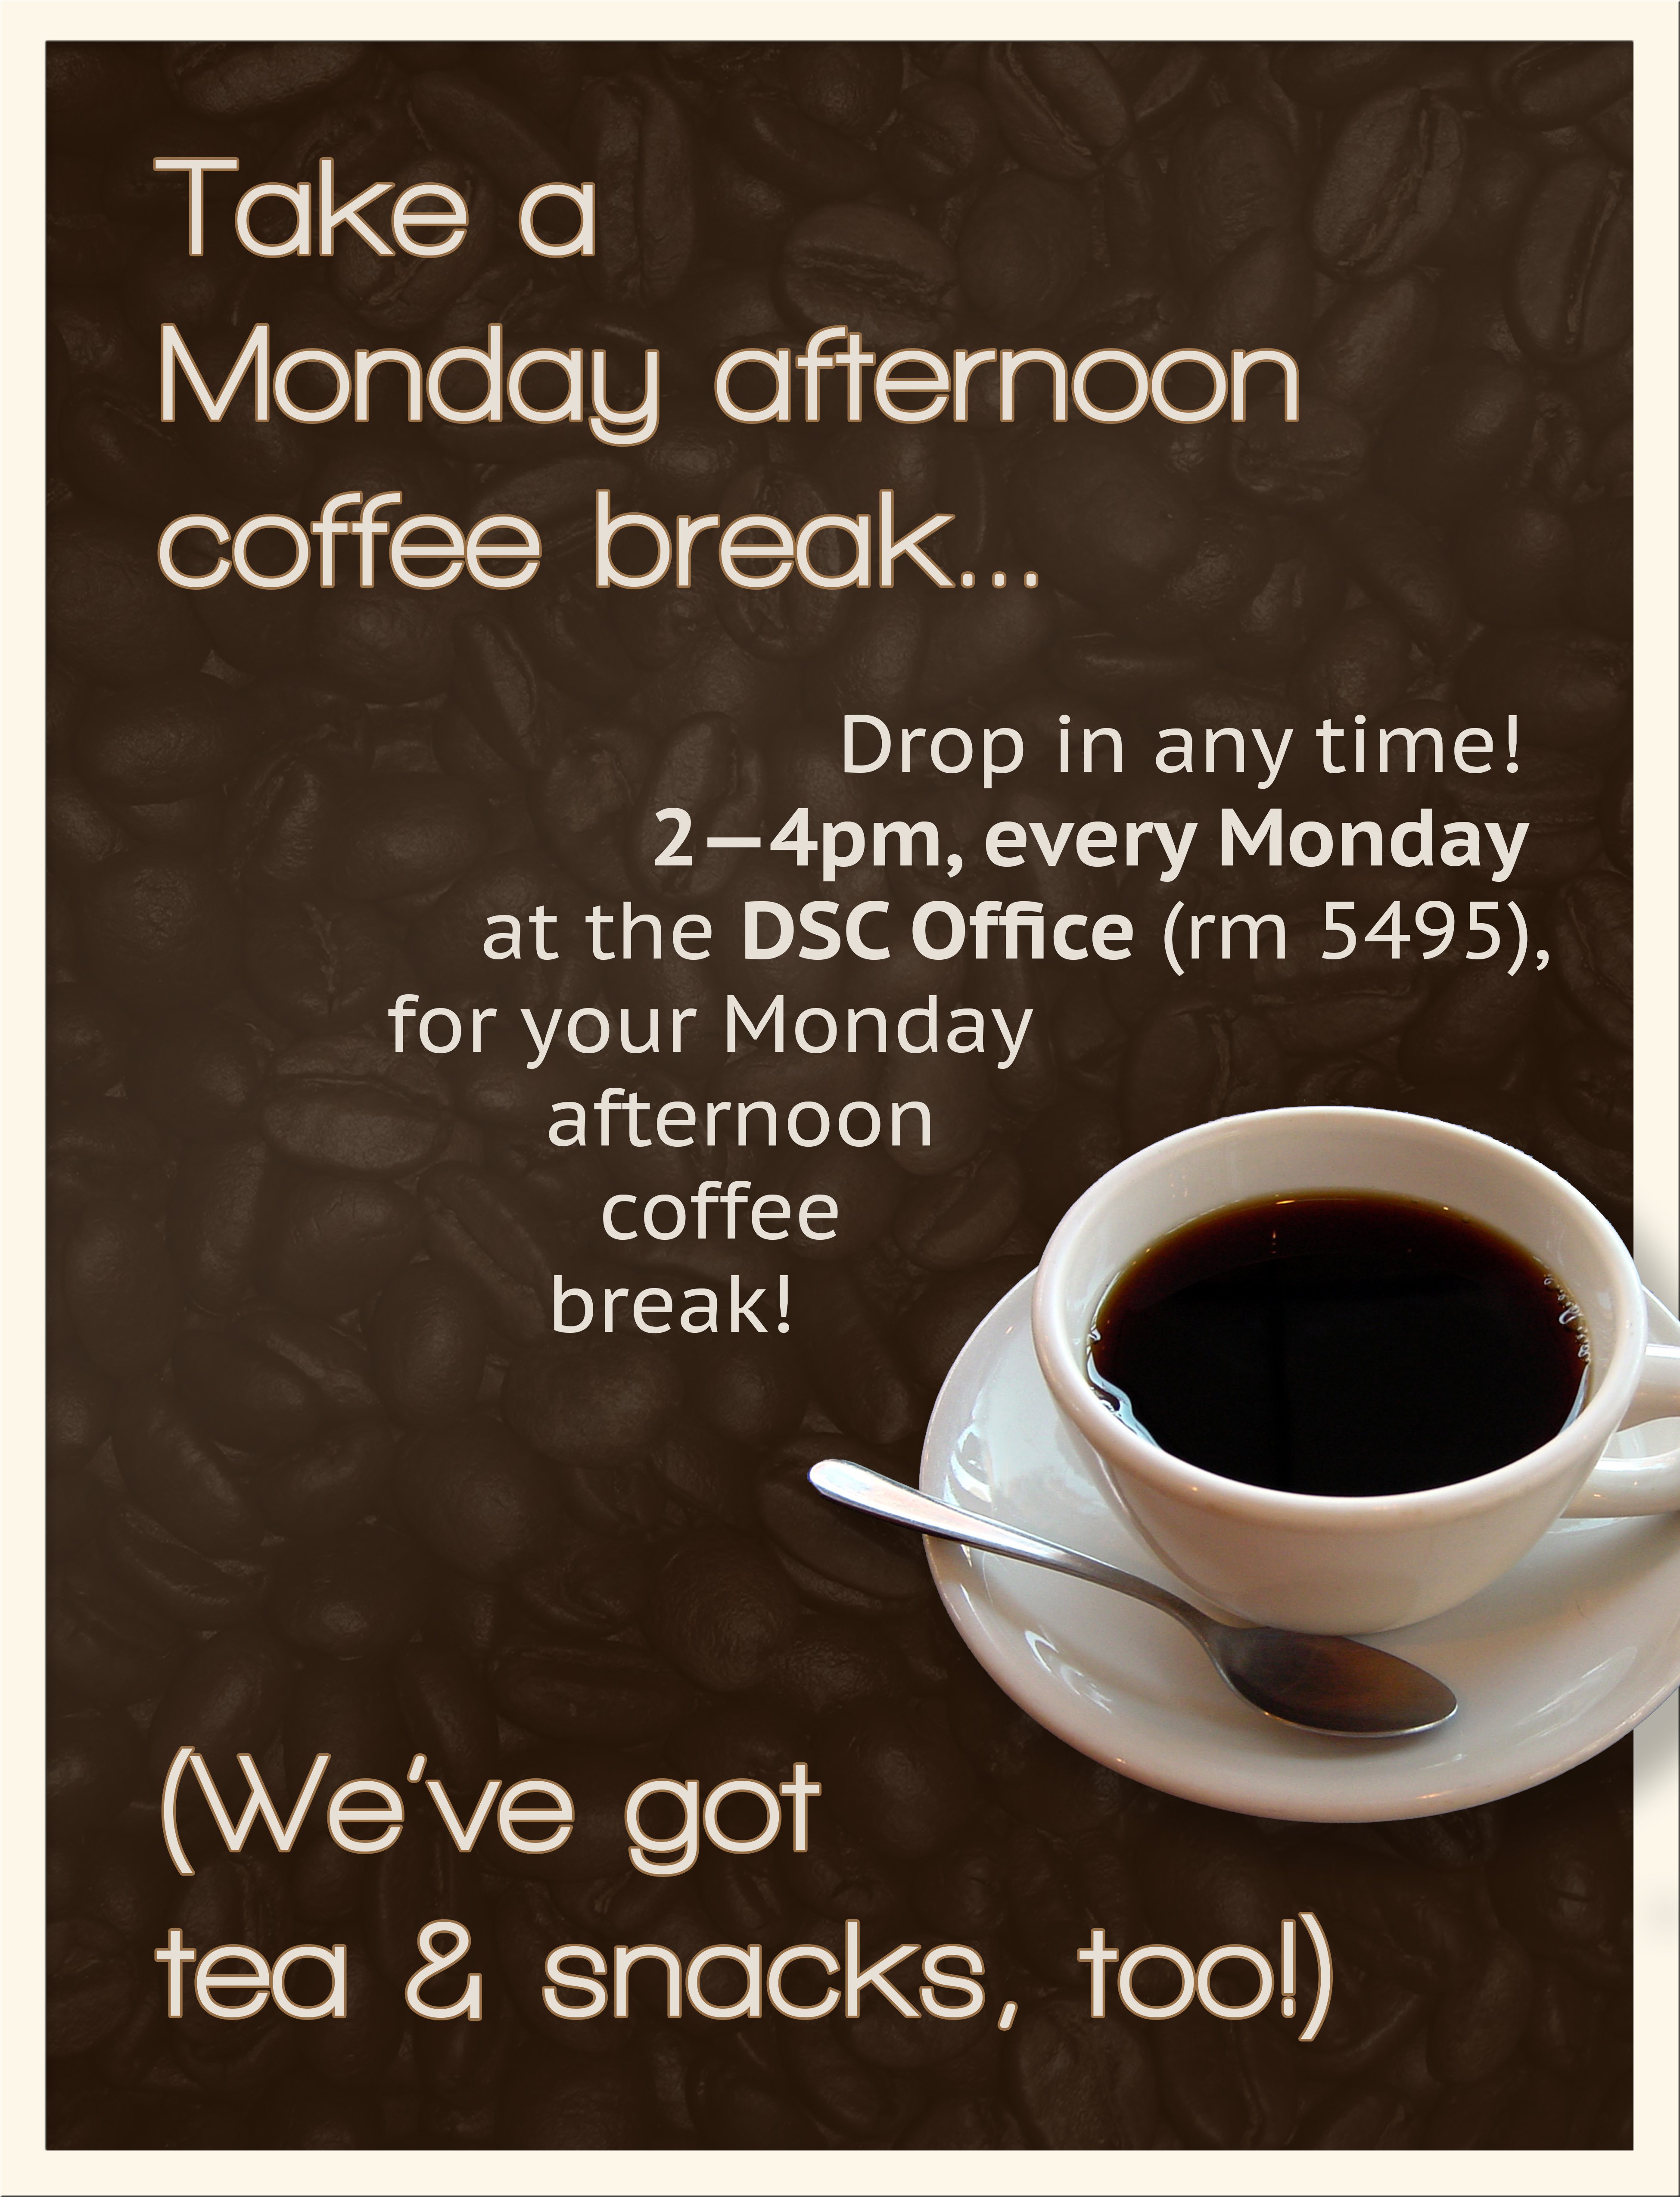 Monday Afternoon Coffee Breaks with the DSC! - CUNY DSC Health ... #mondayCoffee